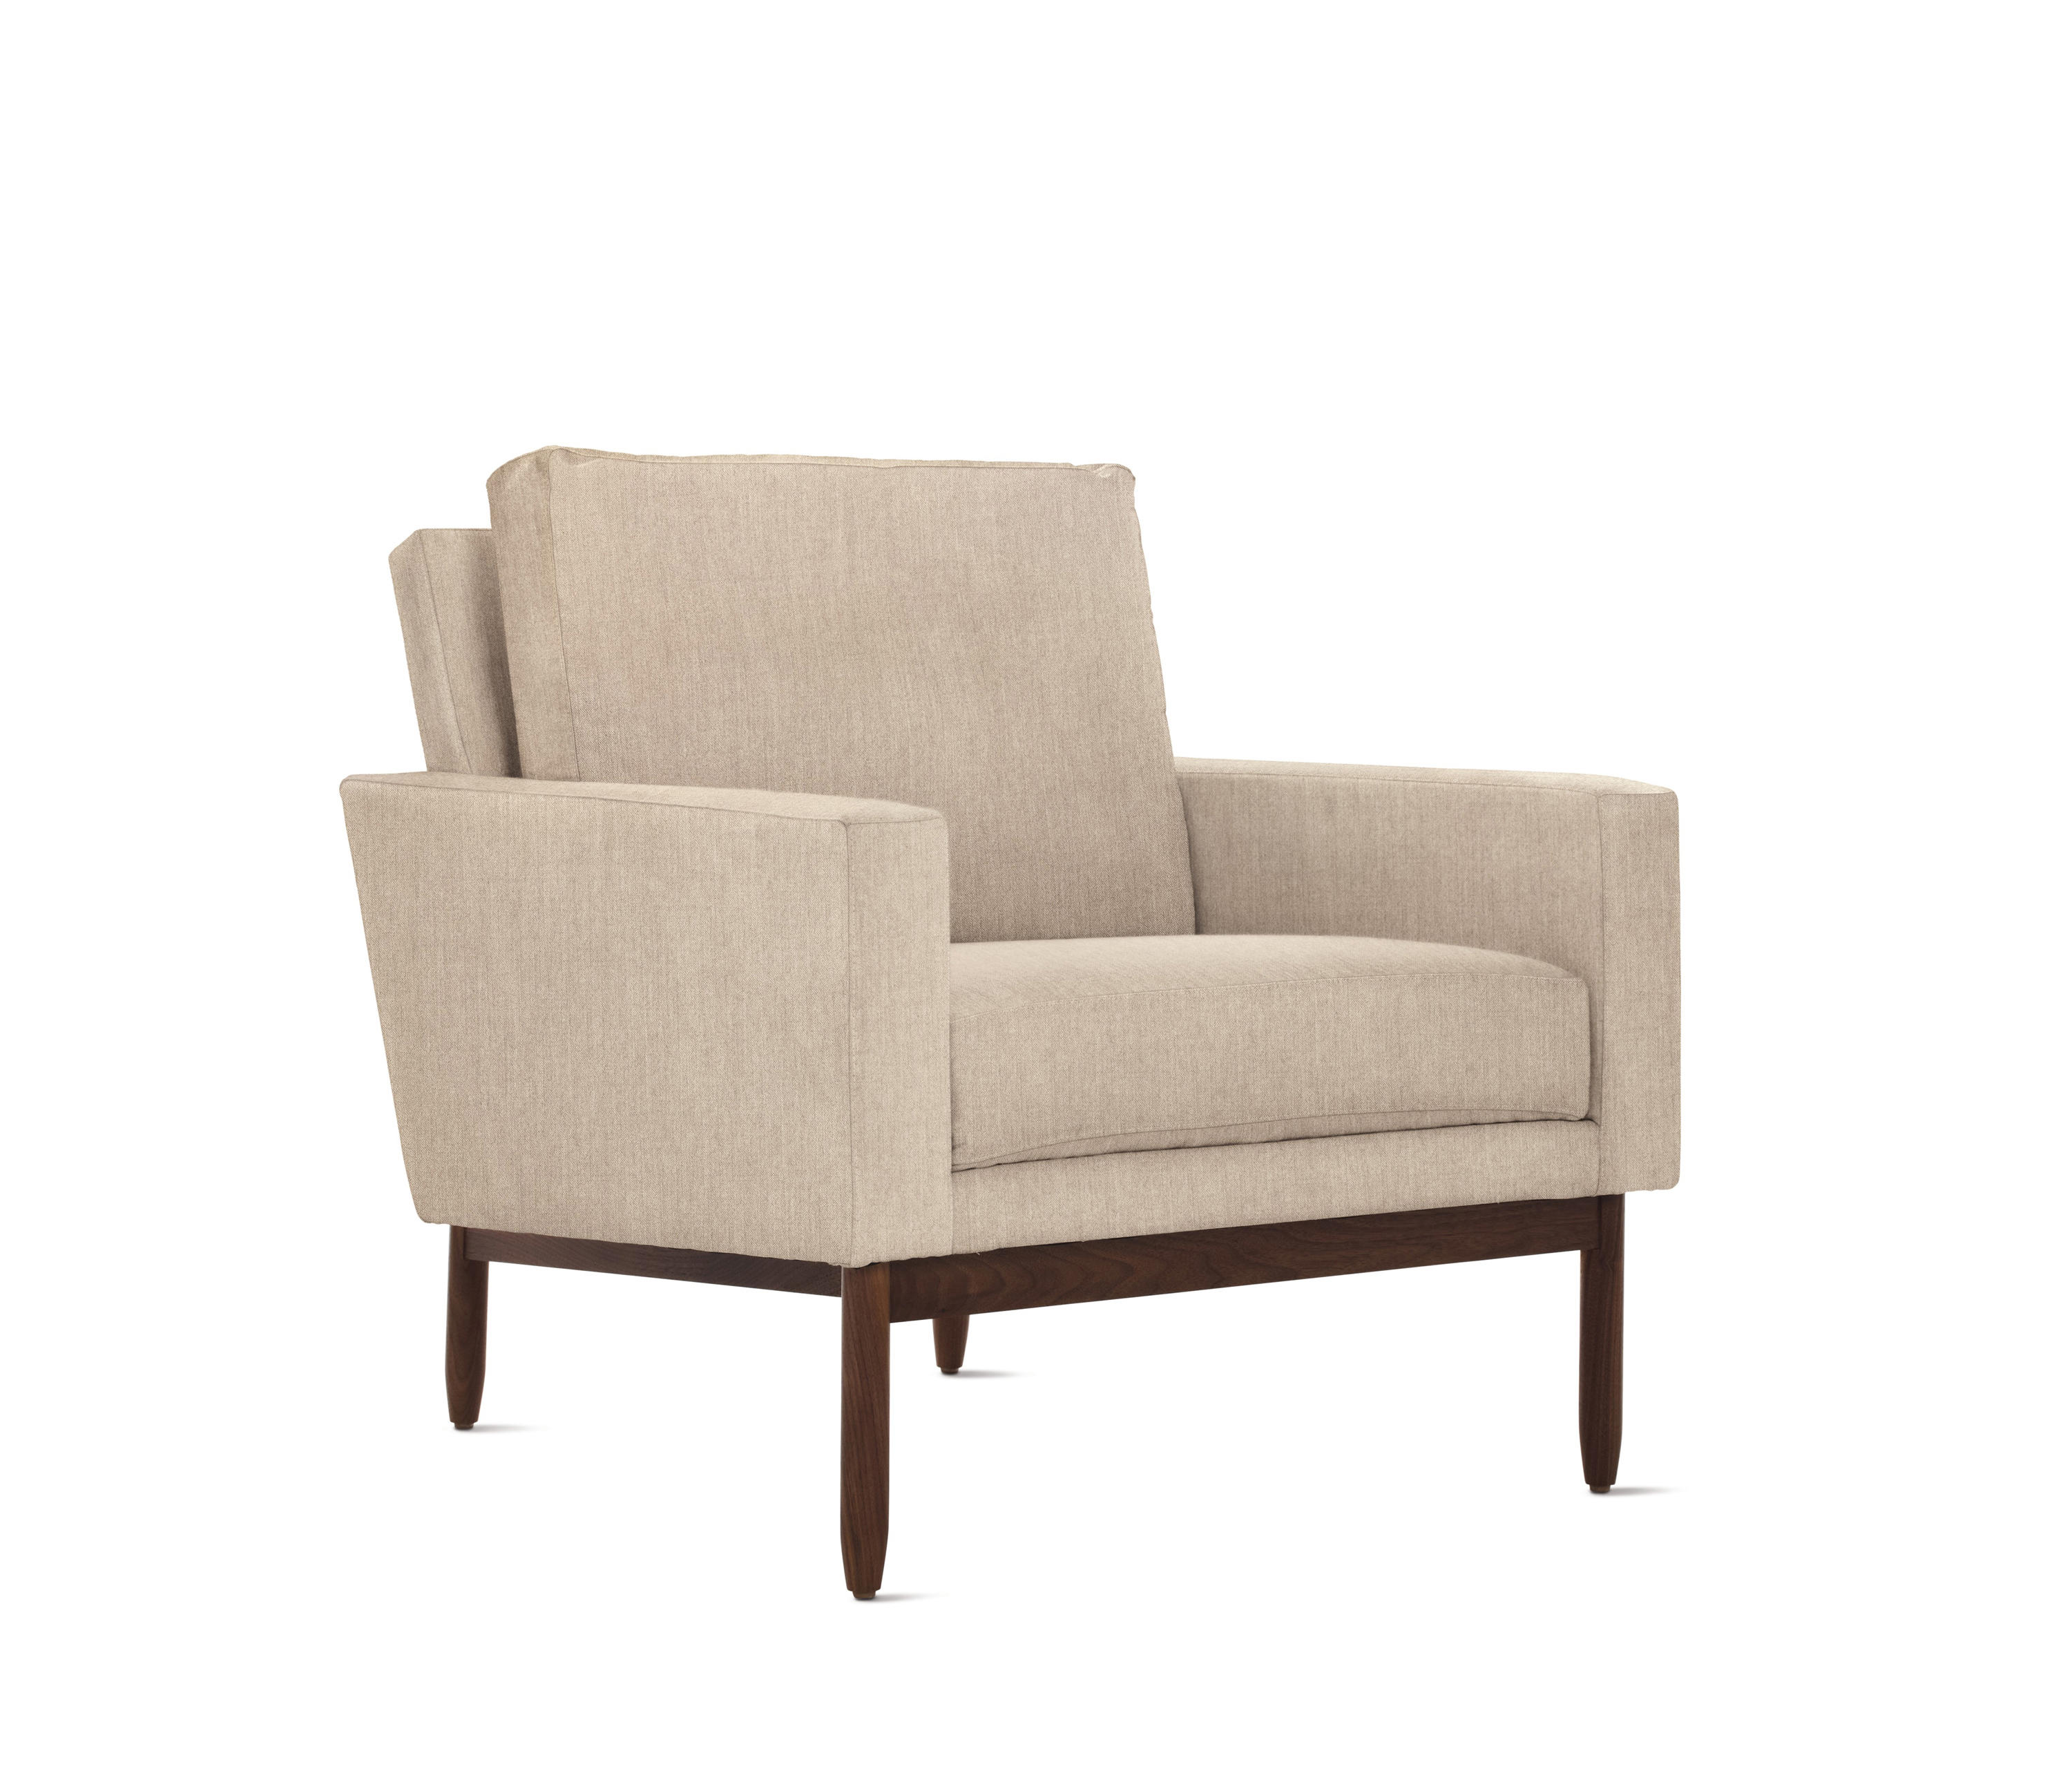 RALEIGH ARMCHAIR IN FABRIC - Armchairs from Design Within ...